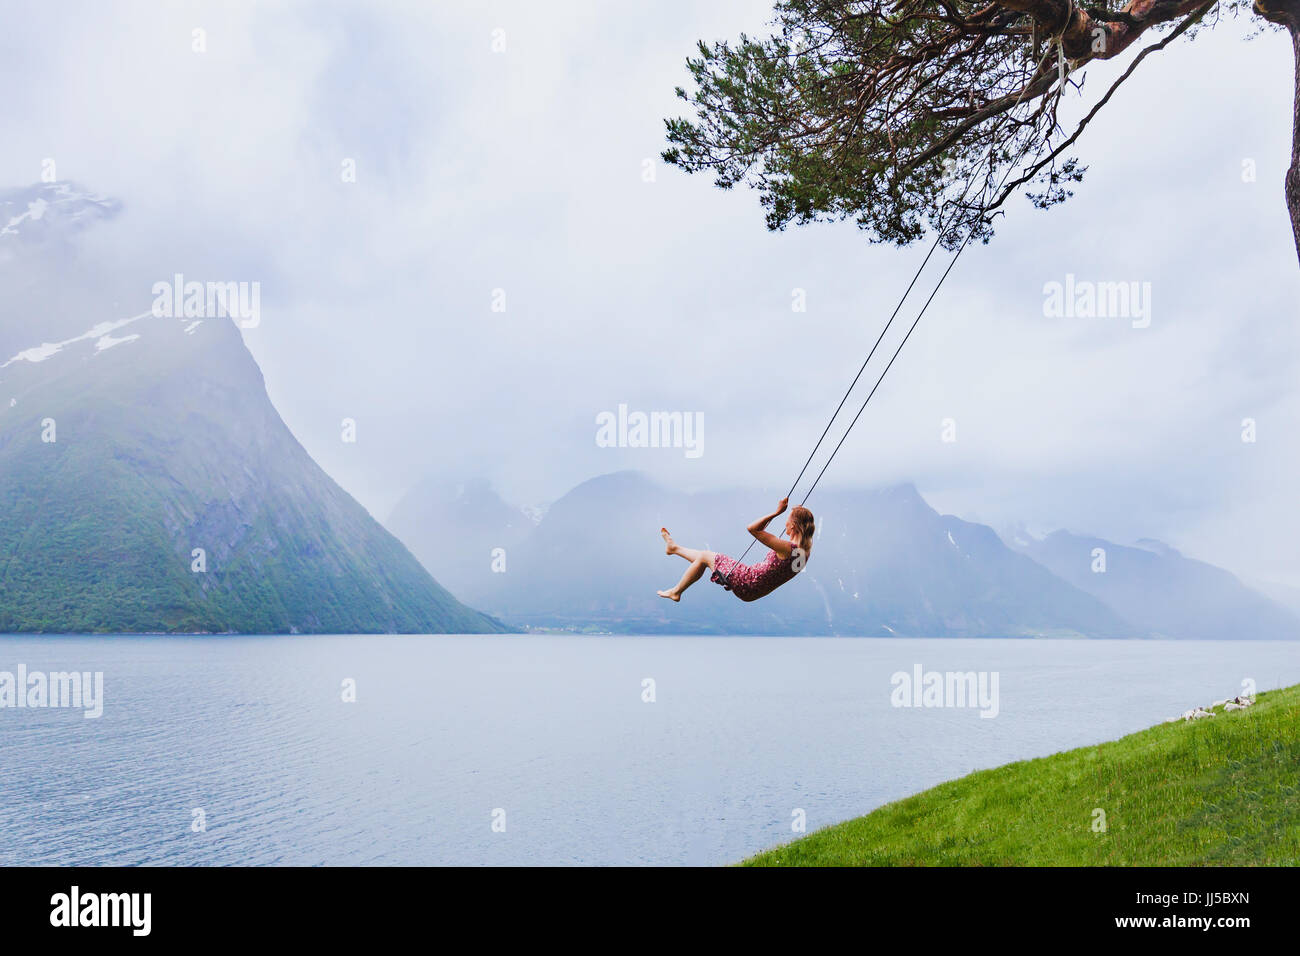 romantic girl on the swing, sweet dreams, daydream concept background - Stock Image